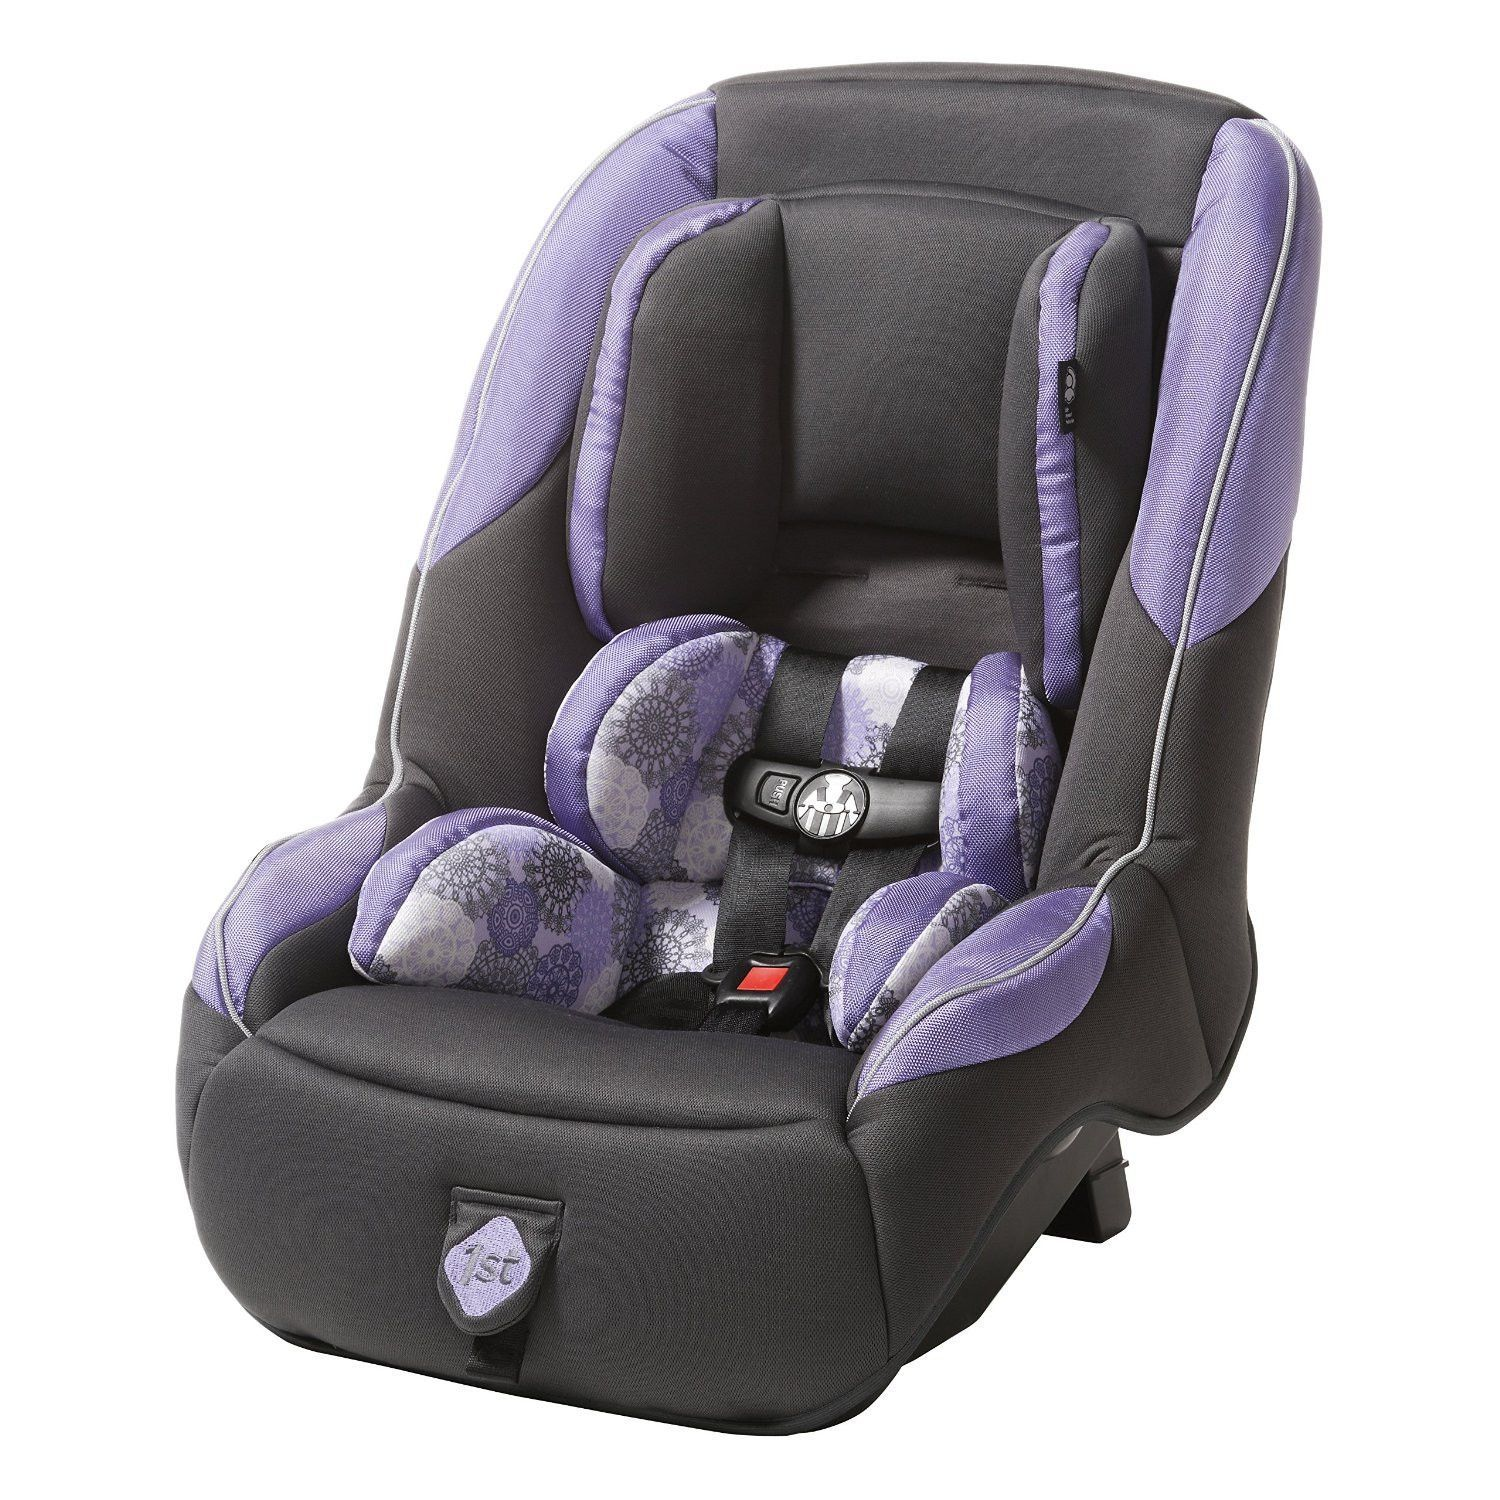 Safety 1st Guide 65 Convertible Car Seat (Victorian Lace ...